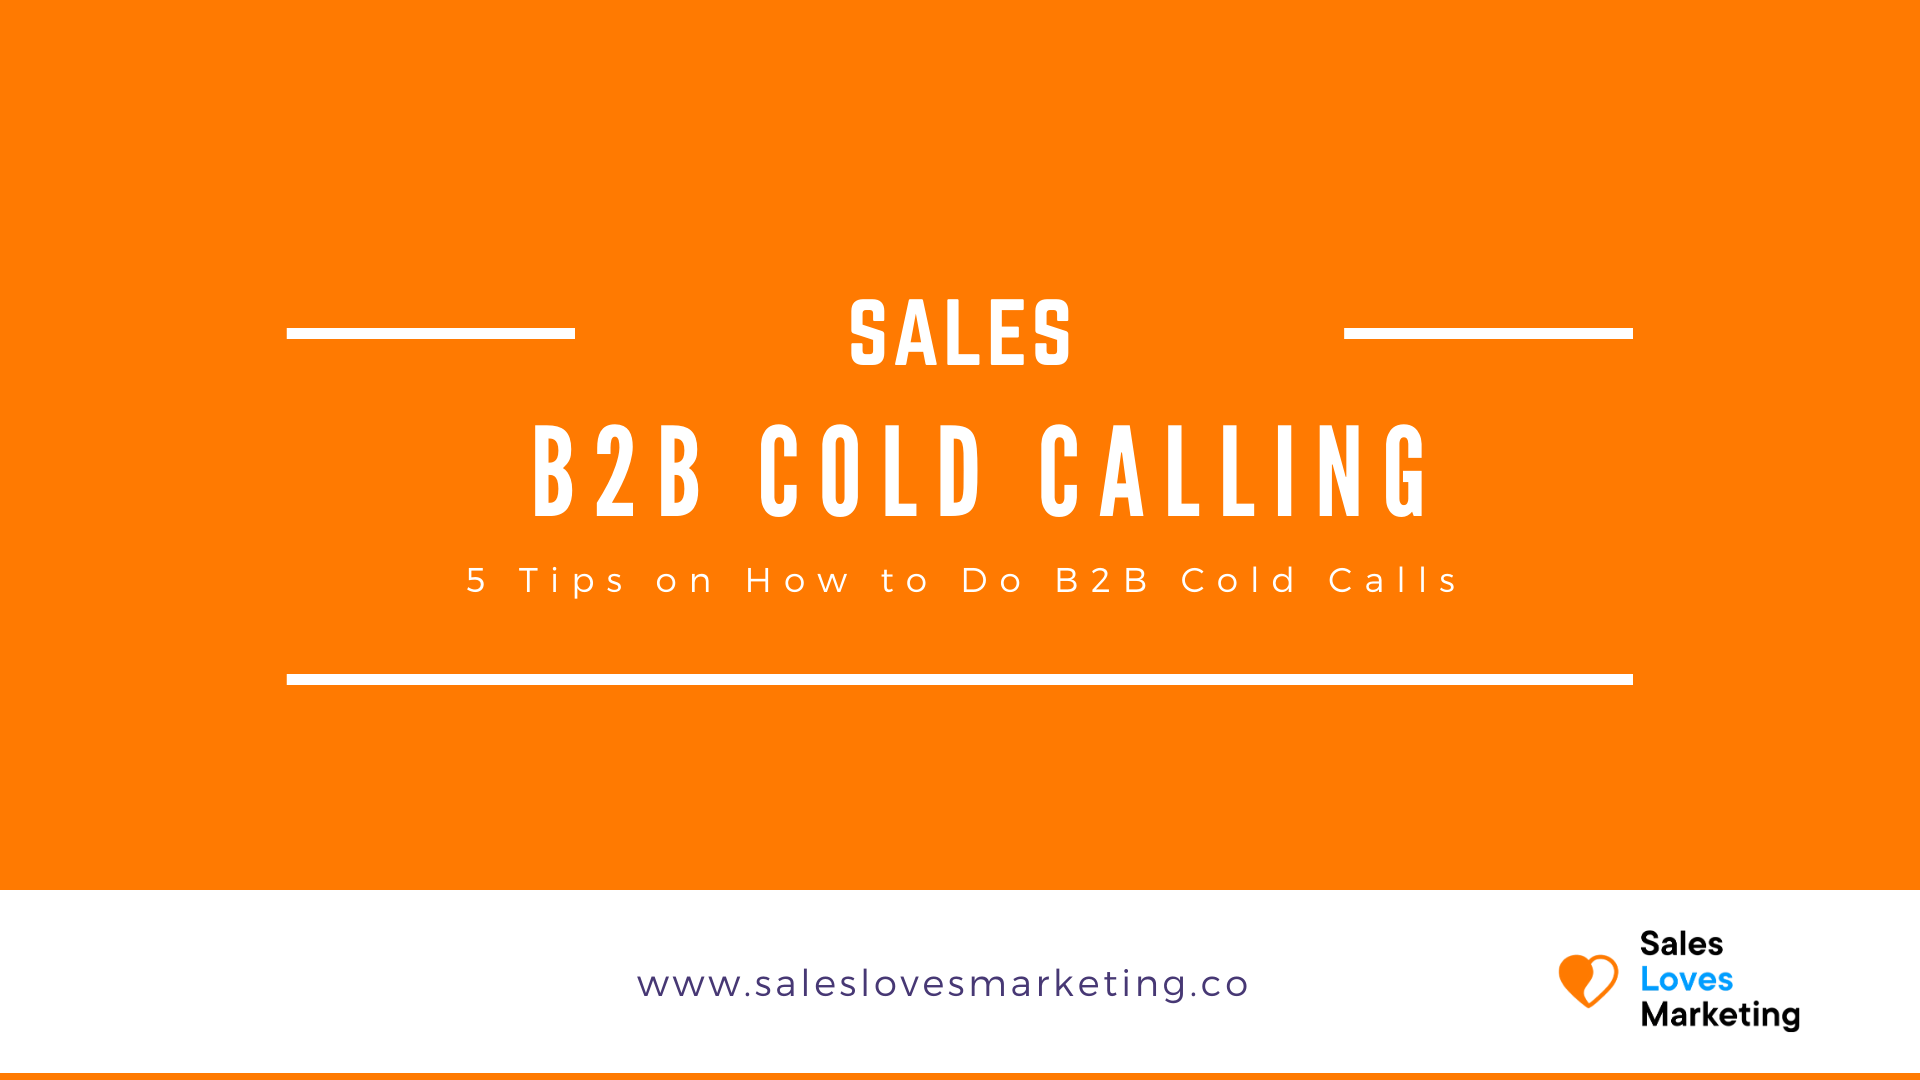 Sales - How to do B2B cold calls to reach your sales target